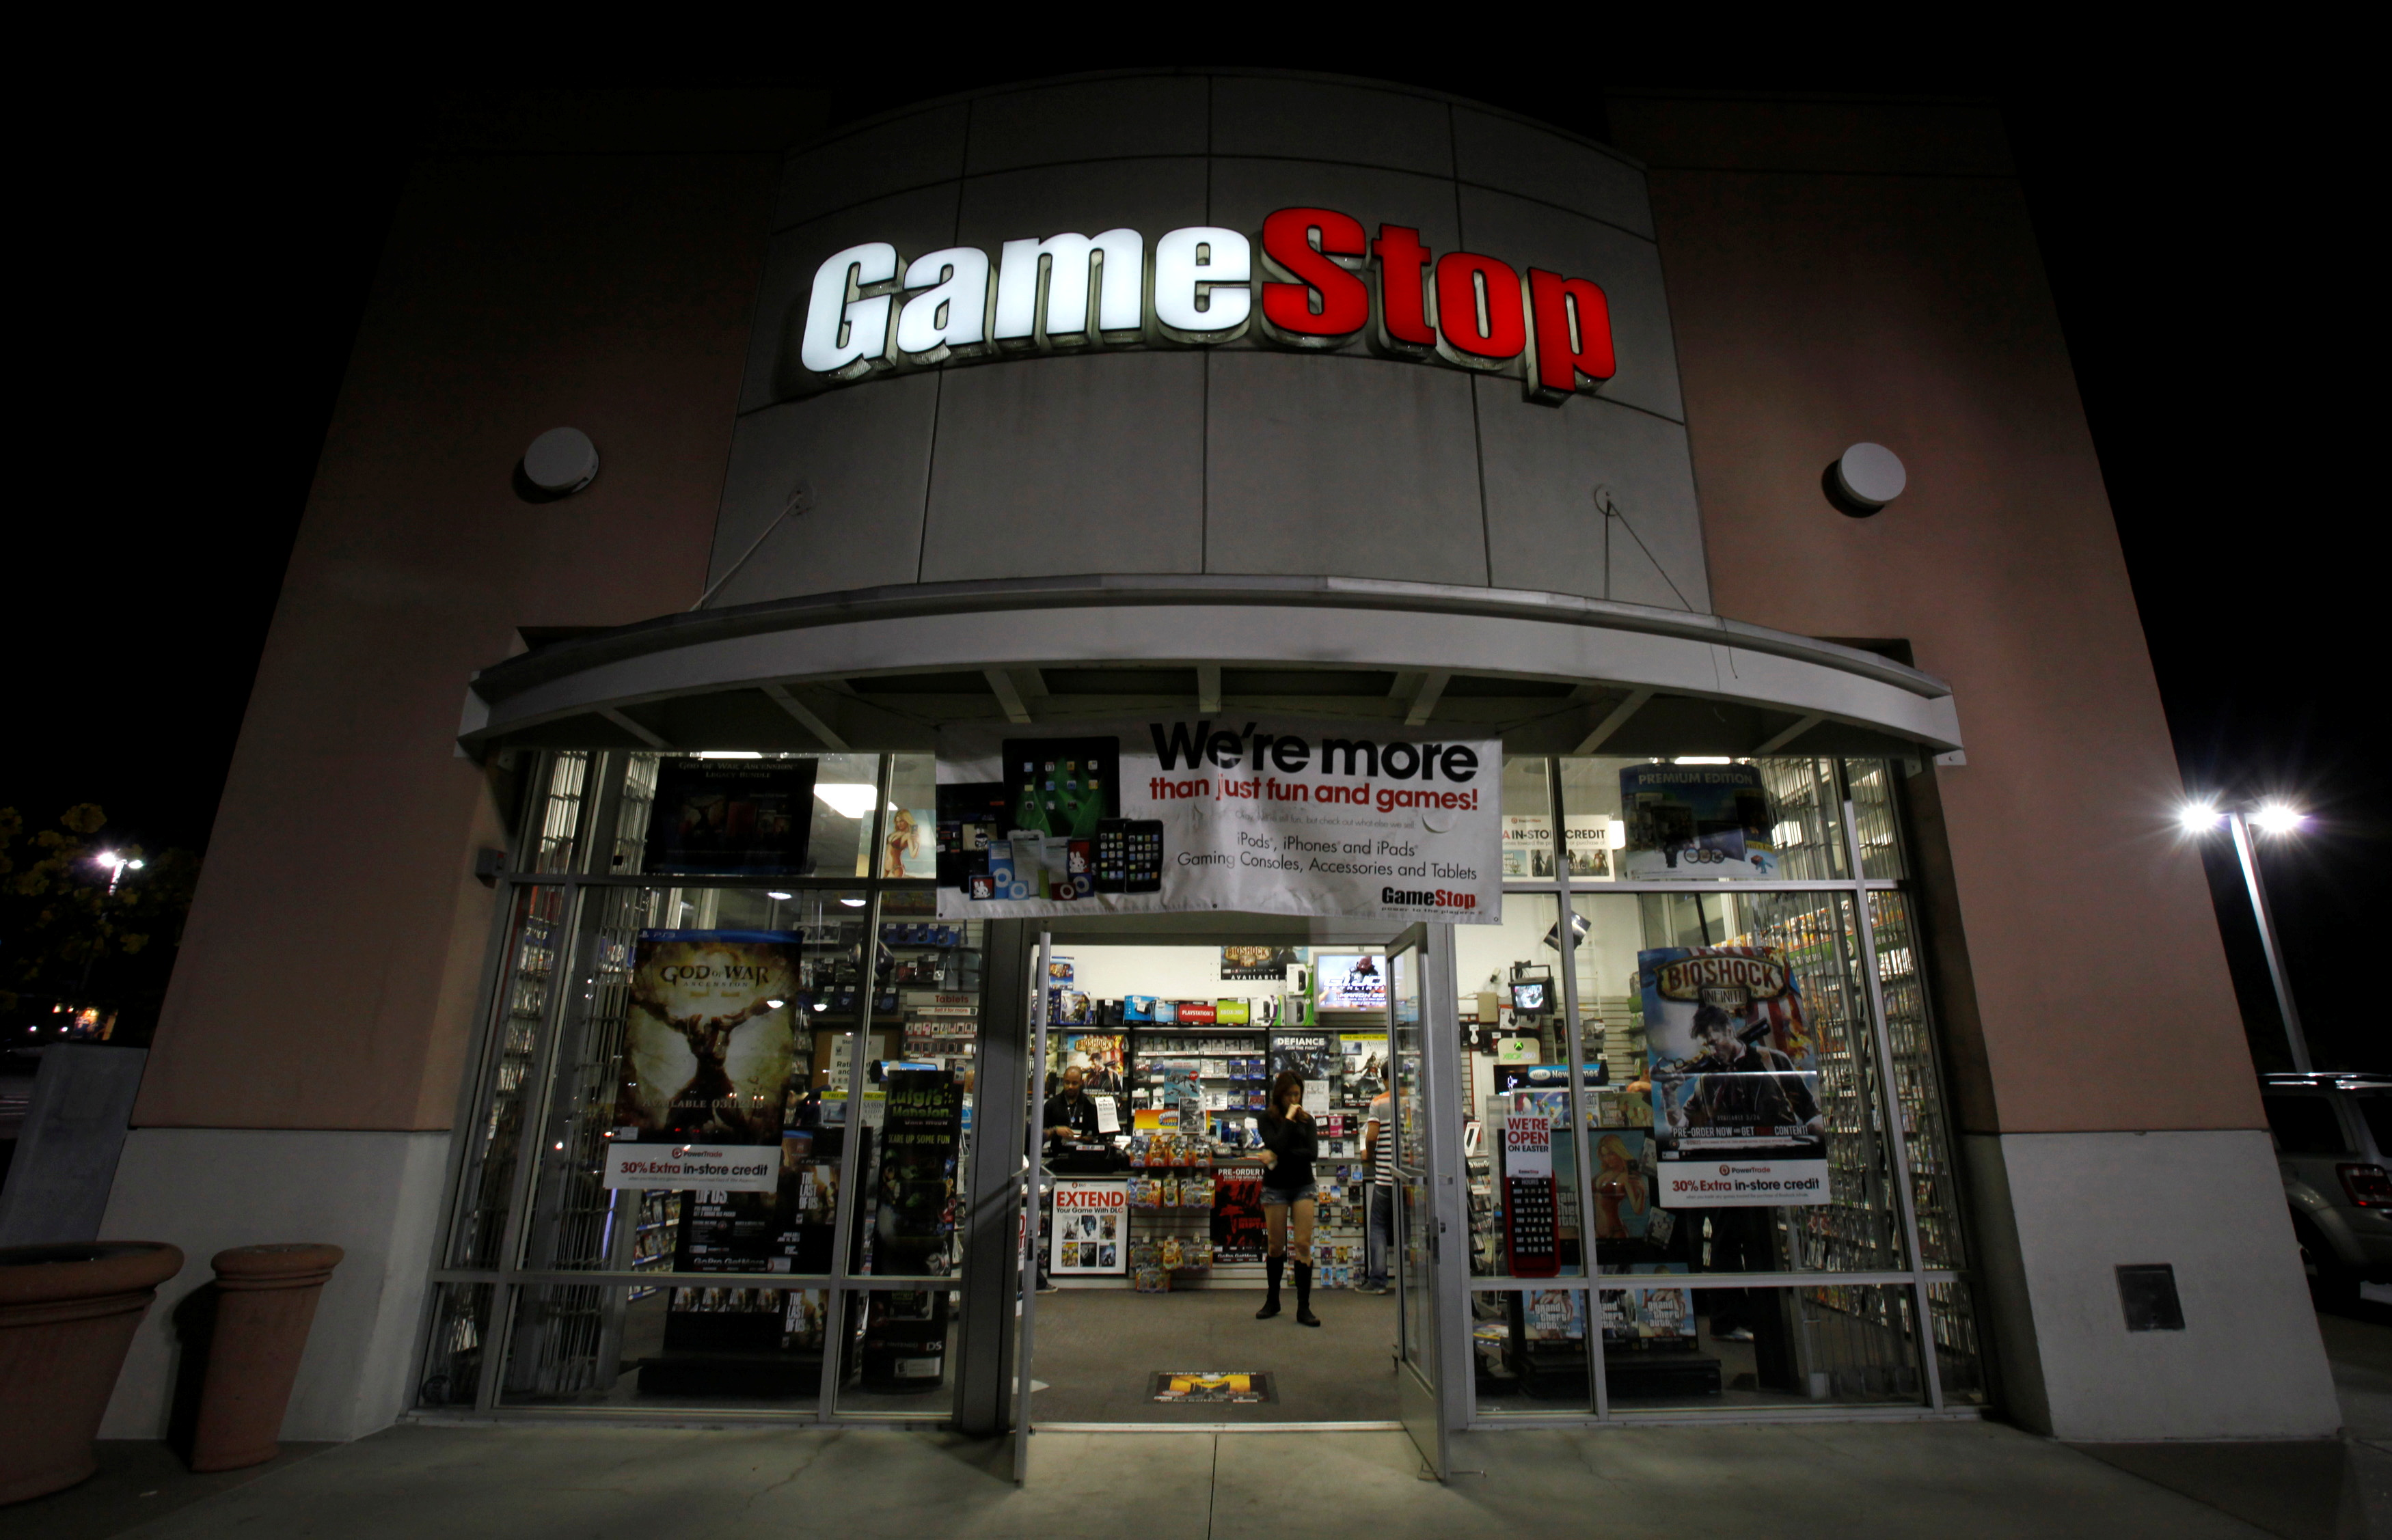 A GameStop store is pictured in Pasadena, California March 27, 2013. REUTERS/Mario Anzuoni/File Photo